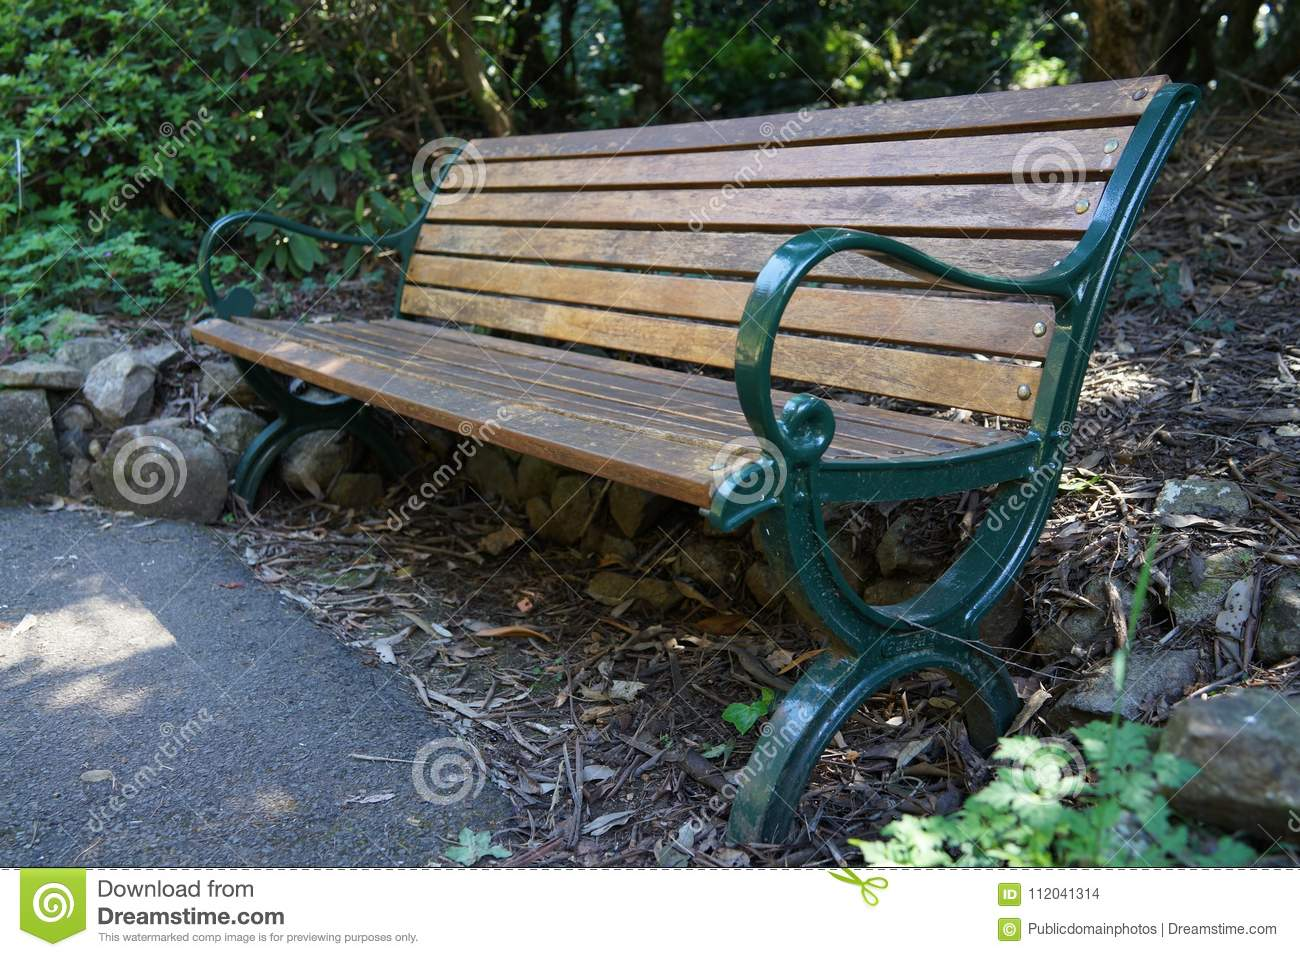 Furniture Bench Outdoor Furniture Wood Public Domain Image Furniture Bench Outdoor Furniture Wood Free Public Domain